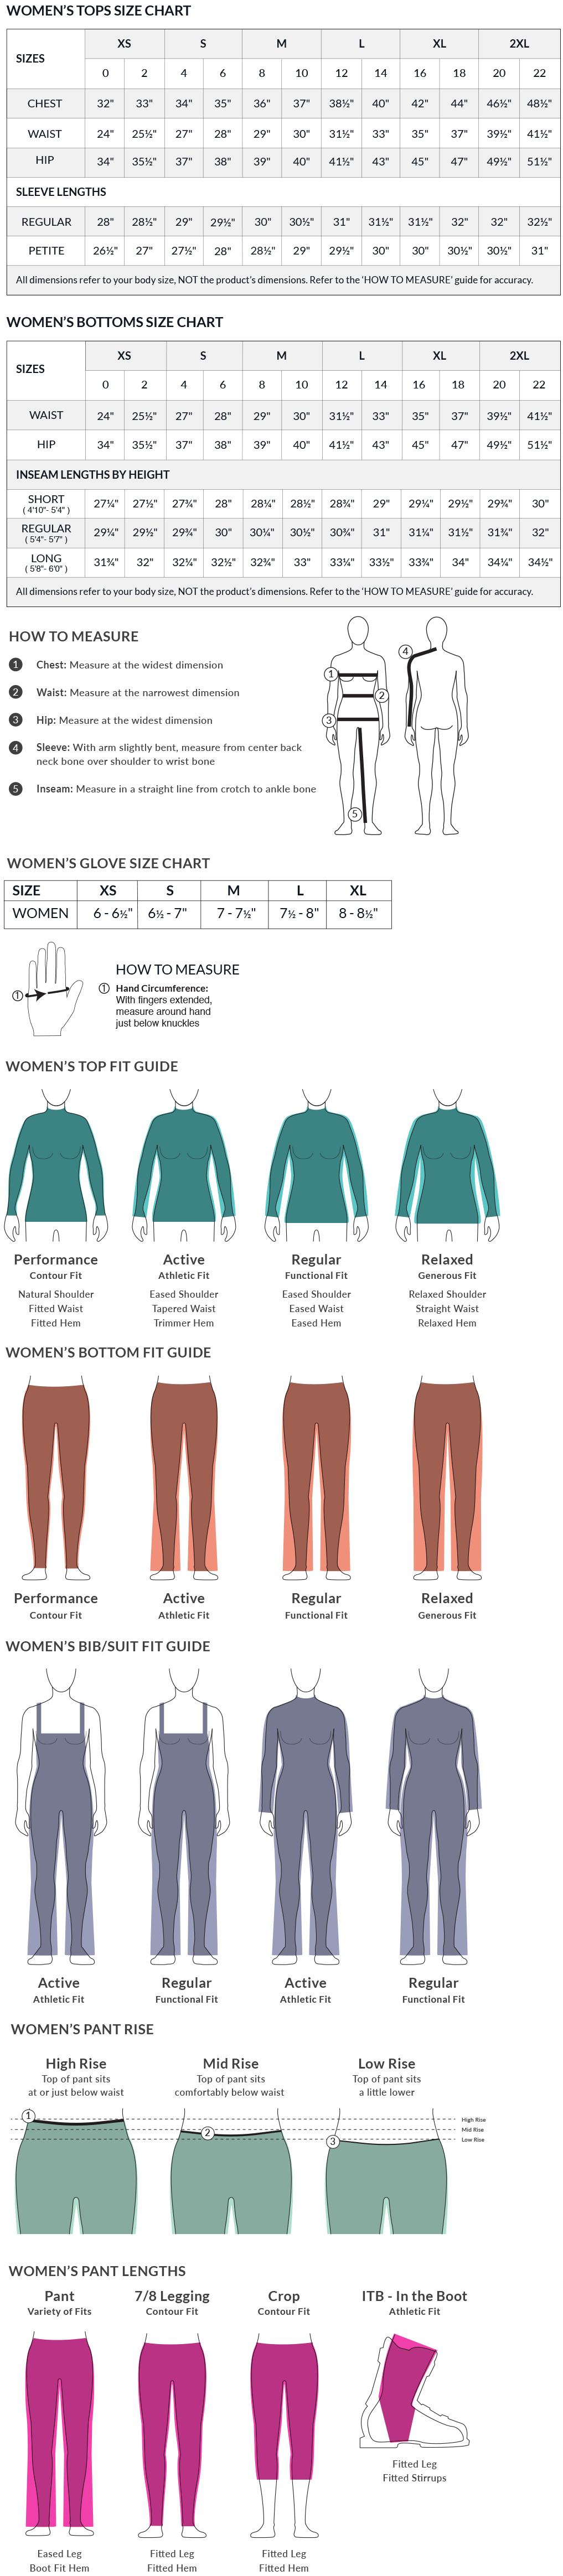 Obermeyer Women's Size Charts and Fit Guide